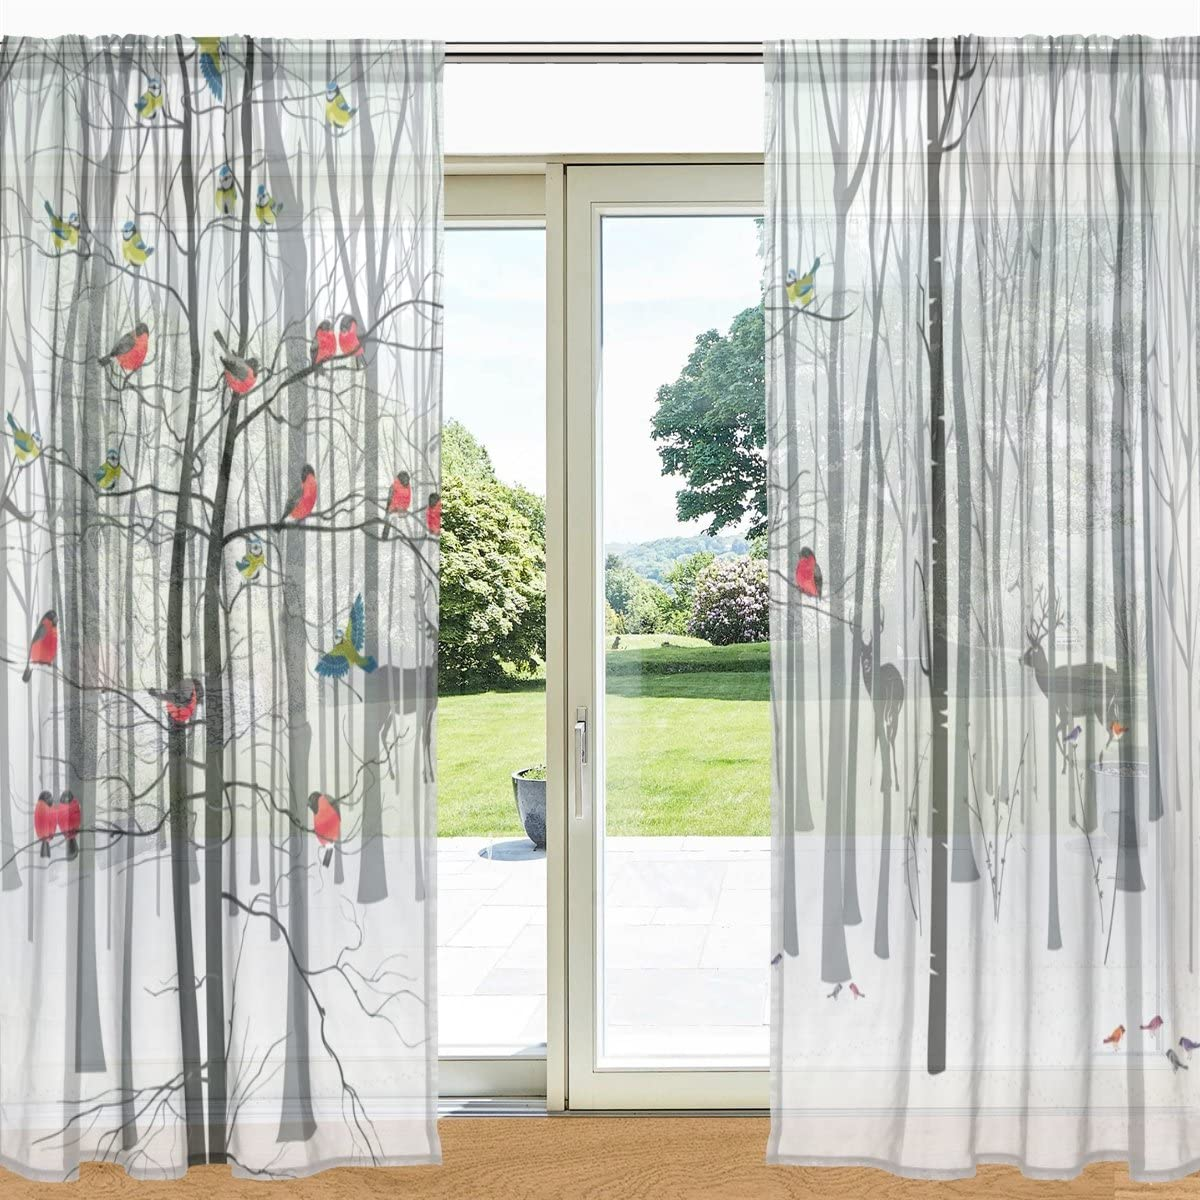 Amazon Com Alaza My Daily Winter Tree And Cardinal Bird Deer Printed Sheer Window And Door Curtain 2 Panels 55 X 78 Rod Pocket Panels For Living Room Bedroom Decor Home Kitchen